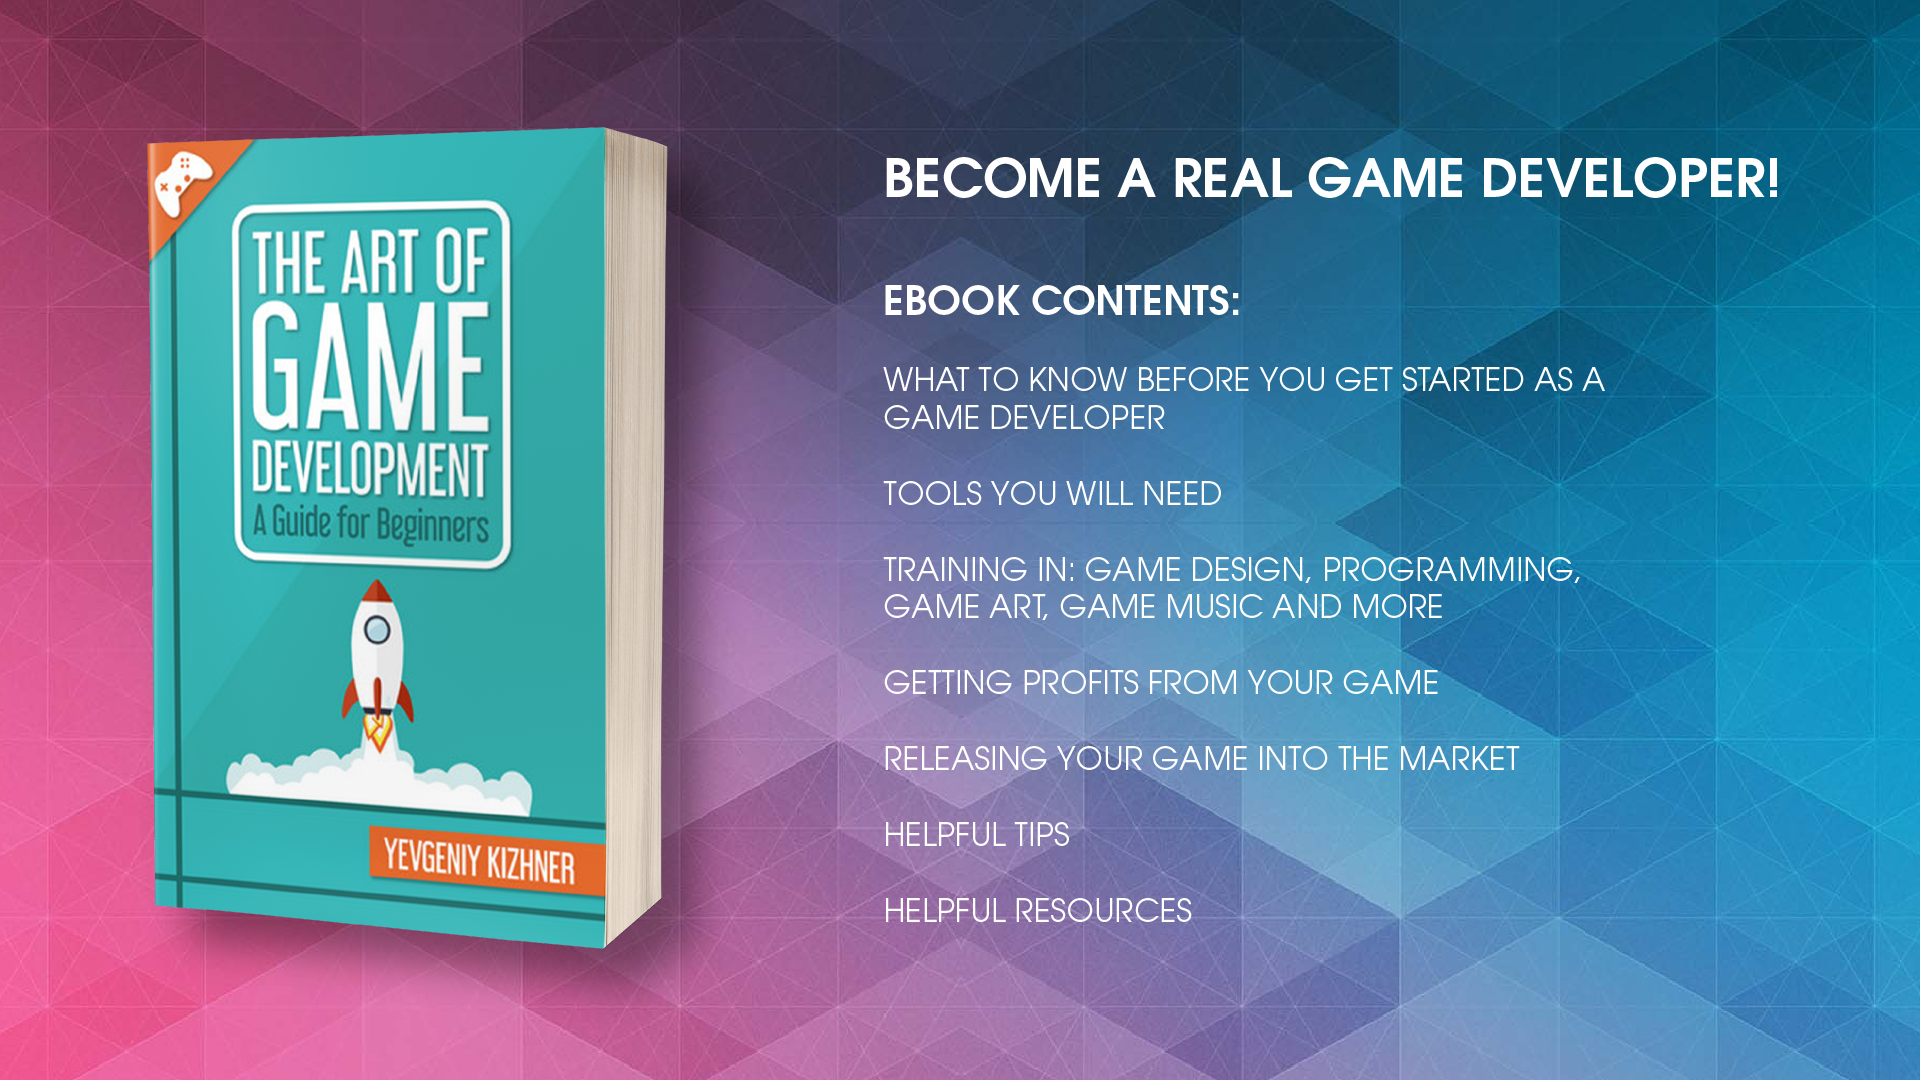 The Art of Game Development: A Guide for Beginners (ebook)